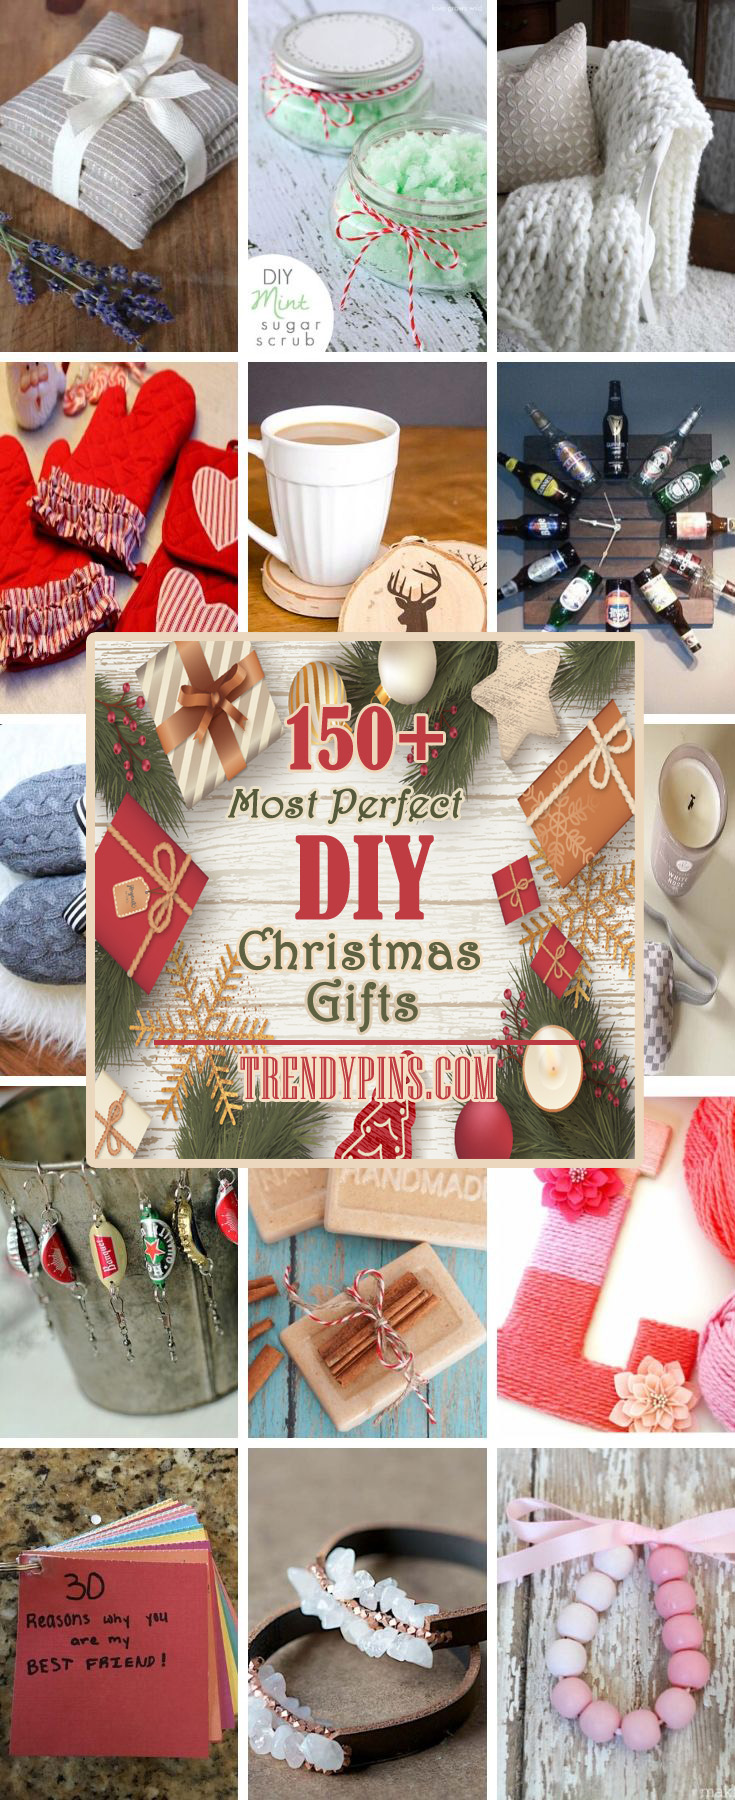 I don't know why you might want to make DIY Christmas gifts but I know that giving DIY gifts for Christmas can give you more options than just going to the store #DIY #Christmas #gifts #trendypins